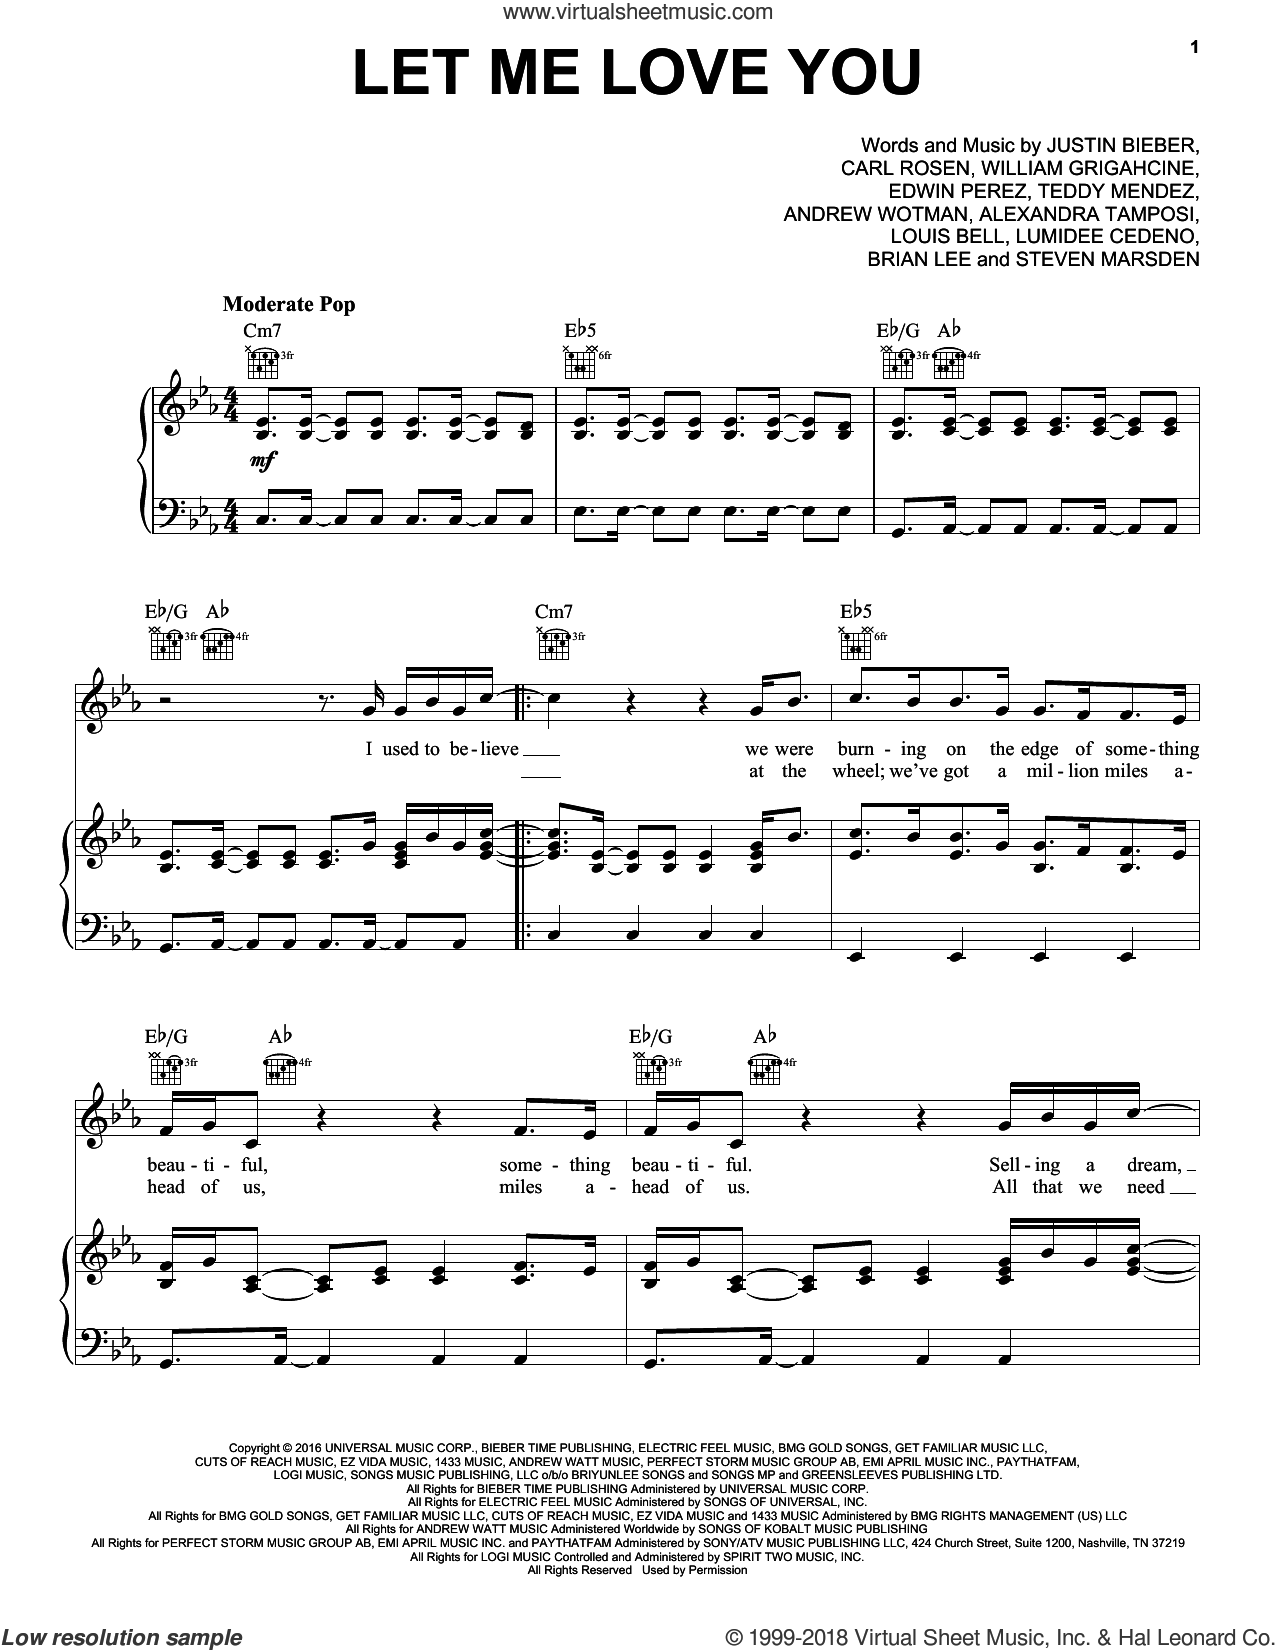 Let Me Love You sheet music for voice, piano or guitar by DJ Snake featuring Justin Bieber, Ali Tamposi, Andrew Wotman, Brian Lee, Carl Rosen, Justin Bieber, Louis Bell and William Grigahcine, intermediate. Score Image Preview.